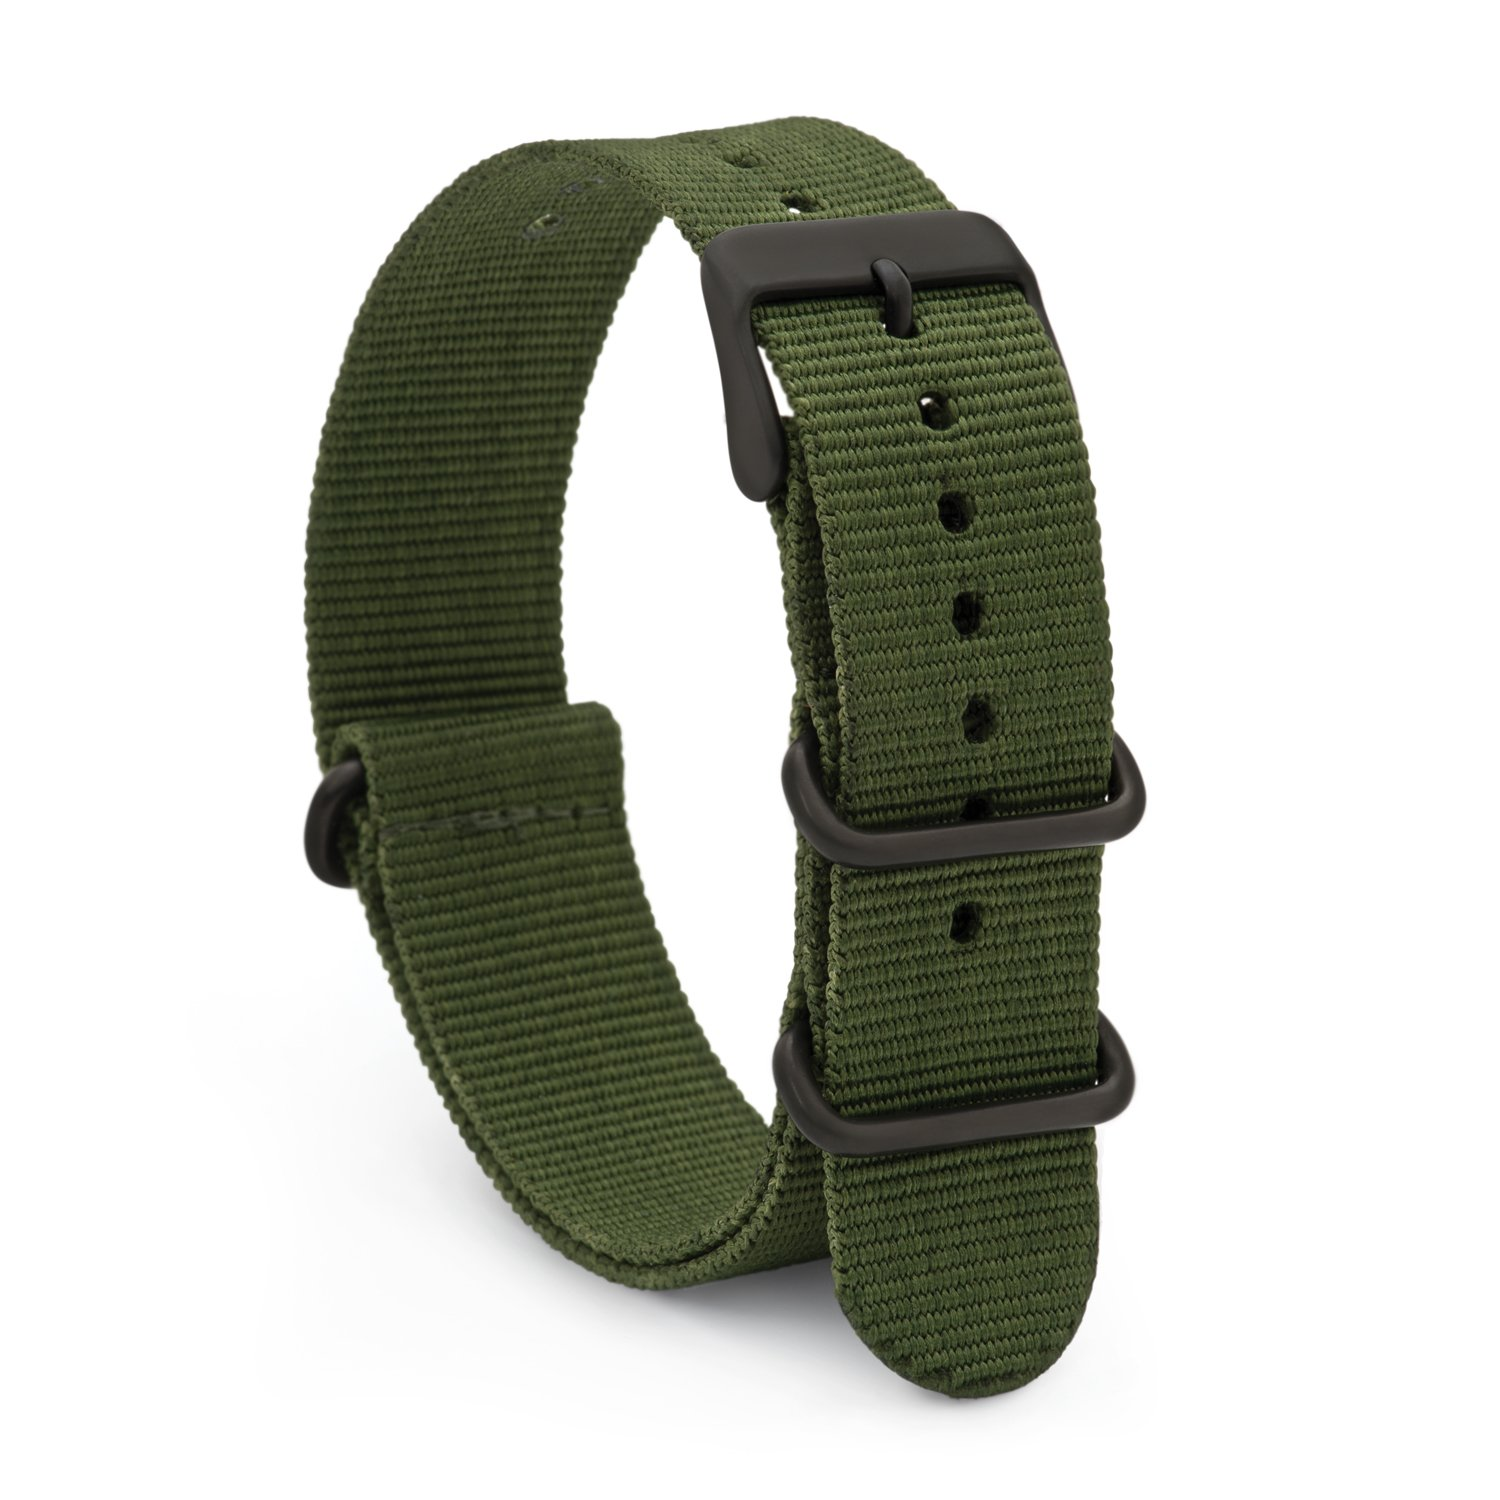 Speidel NATO Watch Band 20mm Green Woven Military Style Nylon Strap with Heavy Duty Stainless Steel Keepers and Buckle